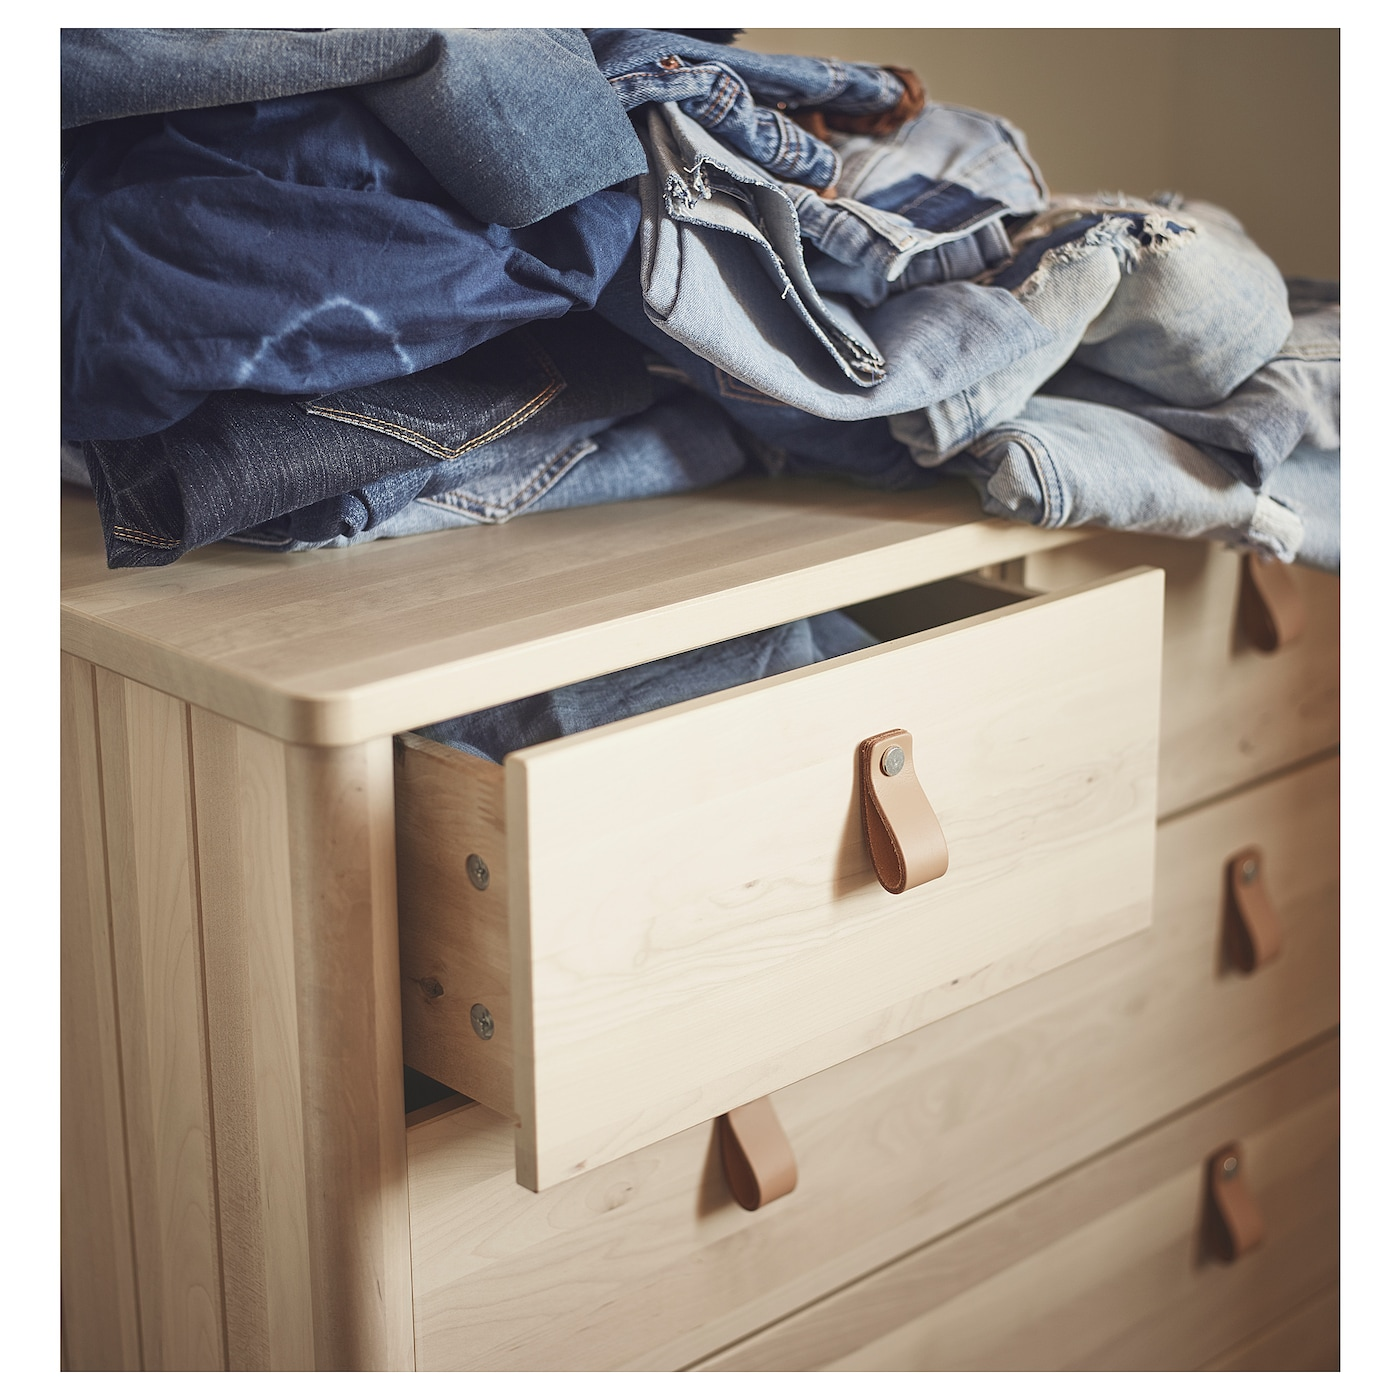 IKEA BJÖRKSNÄS chest of 5 drawers Smooth running drawers with pull-out stop.